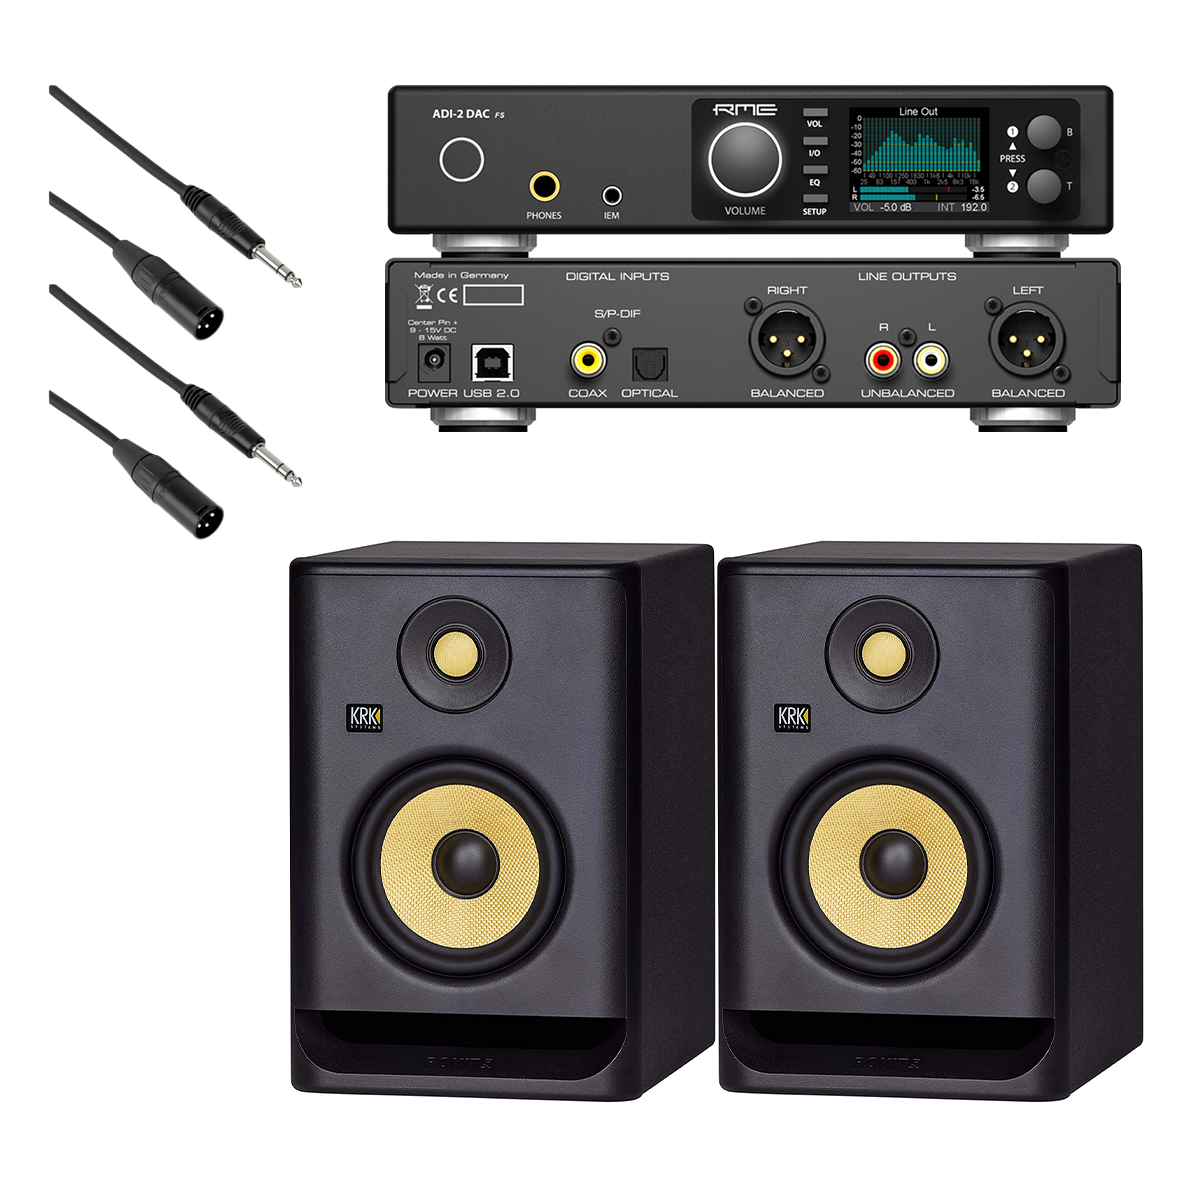 -1 RME ADI-2 DAC FS 2-channel DA Converter - KRK RP5G4 Monitors (Pair) - (2) XLR Cables to 14 - $1329.99